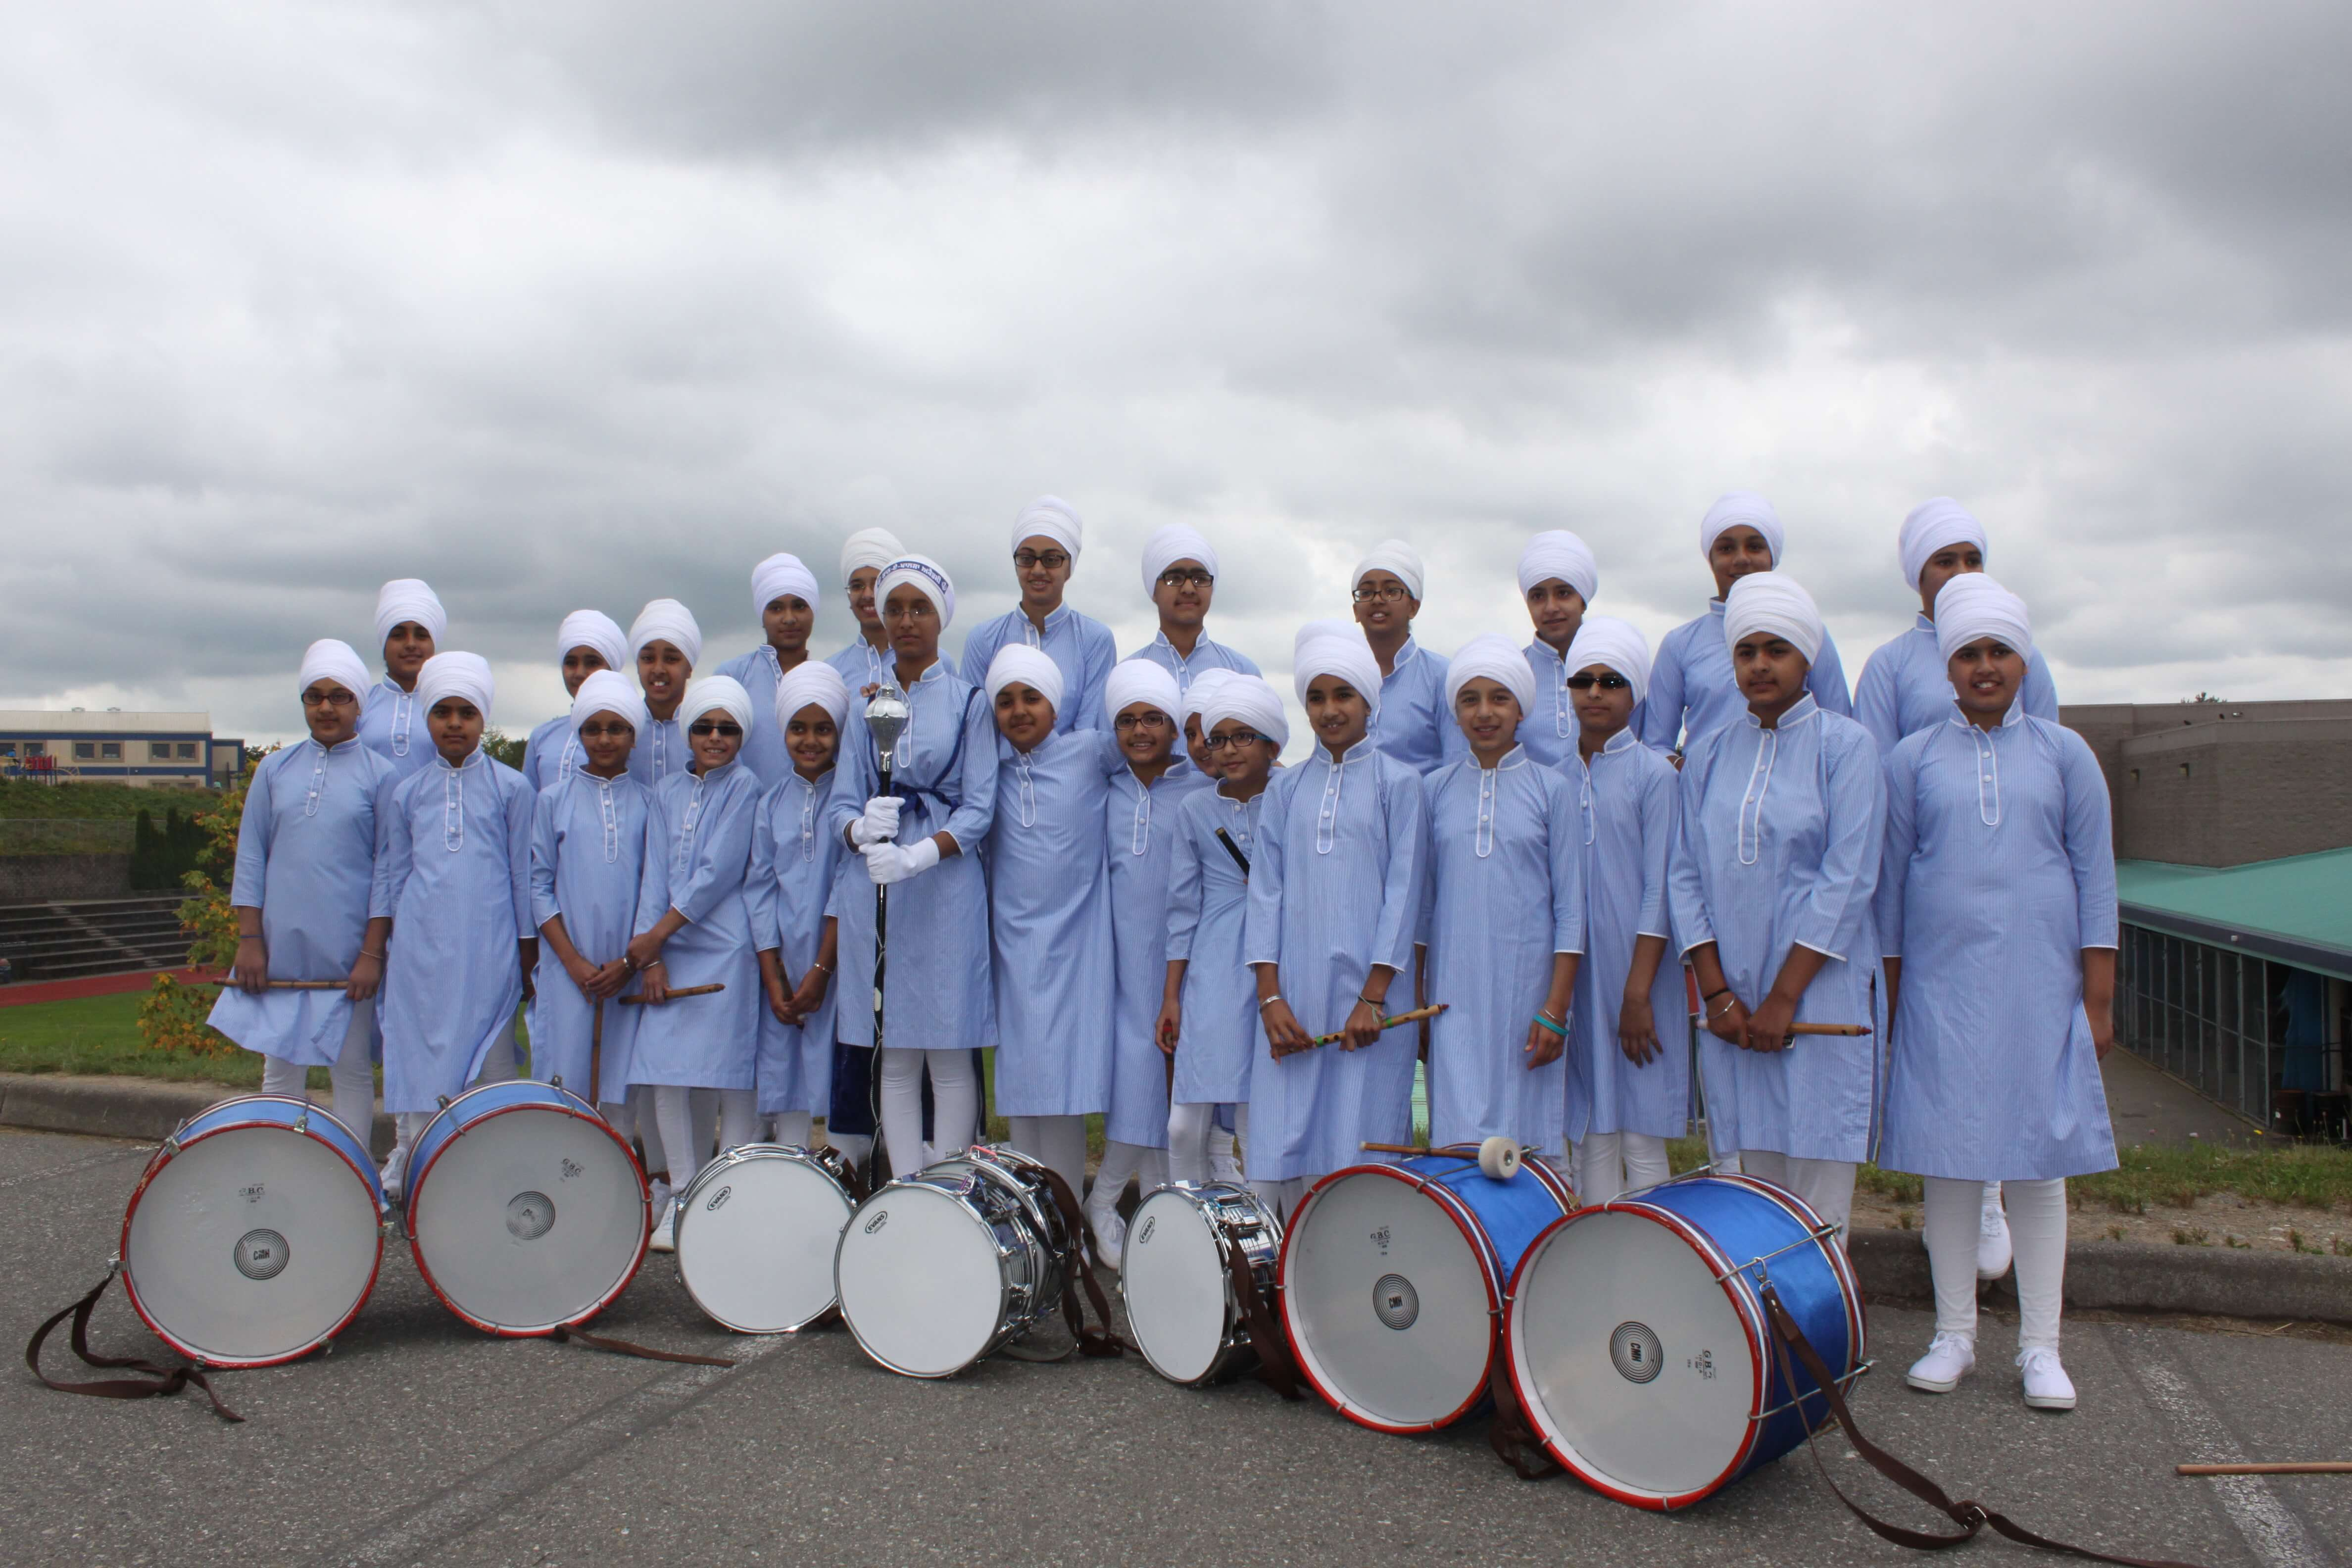 A band team posing for a picture with their instruments